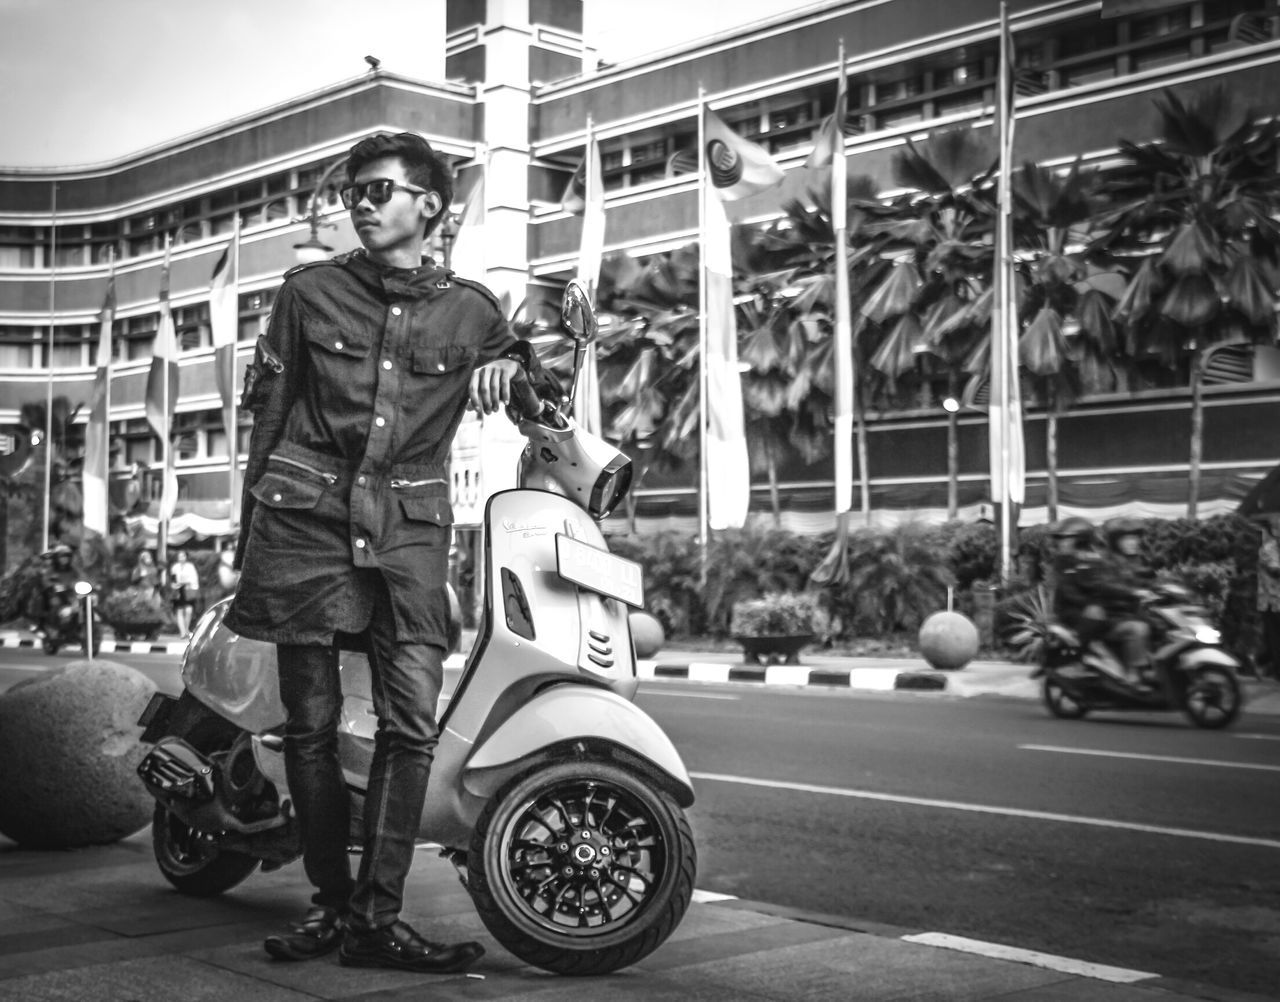 real people, motorcycle, one person, transportation, land vehicle, outdoors, full length, lifestyles, day, helmet, standing, men, building exterior, architecture, young adult, biker, sky, people